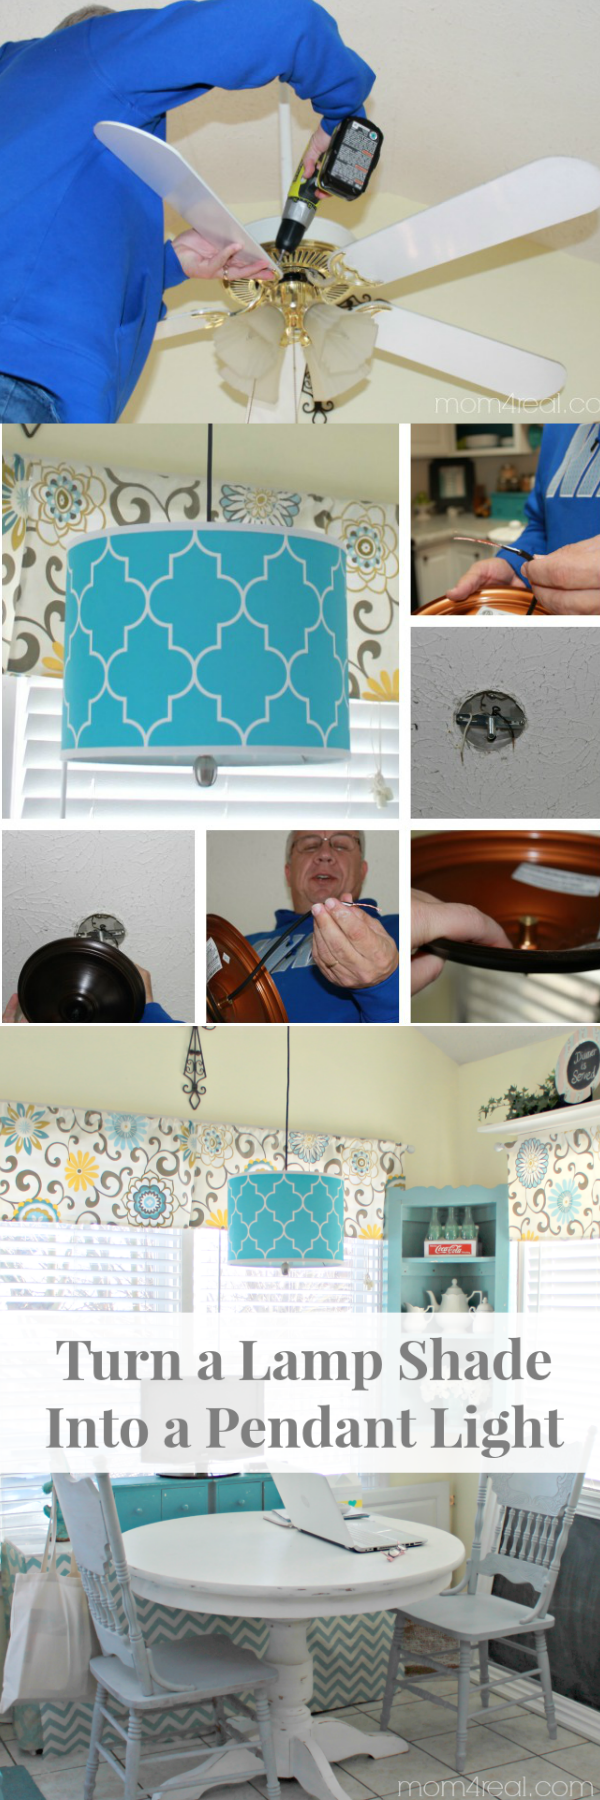 Turn a Lamp Shade Into a Pendant Light - Mom 4 Real